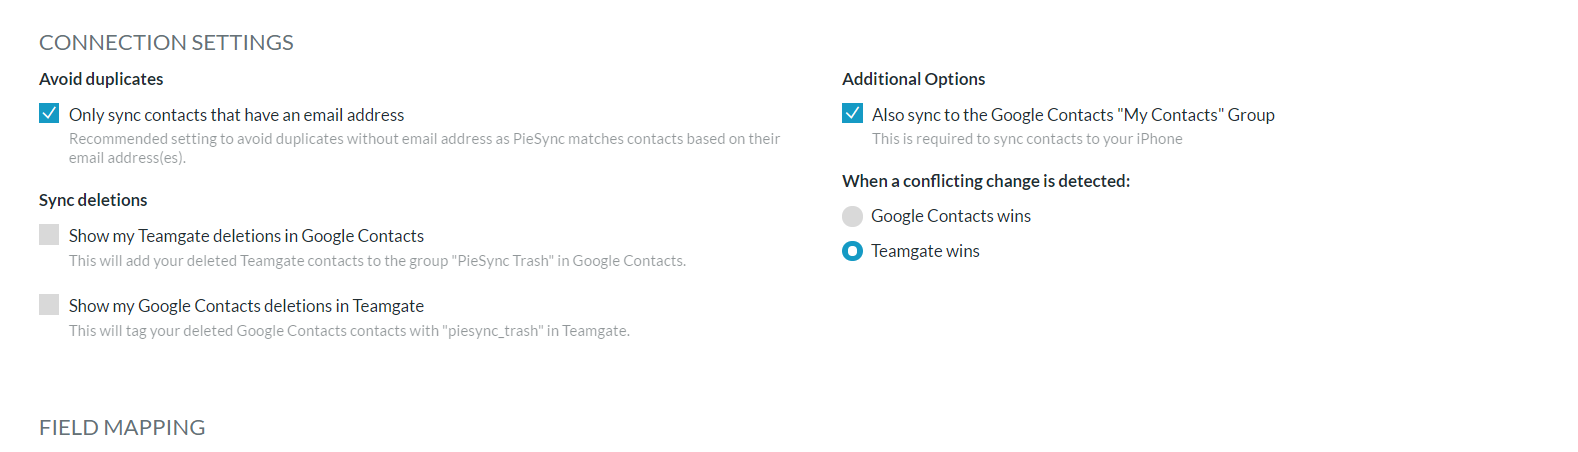 connection-settings.png